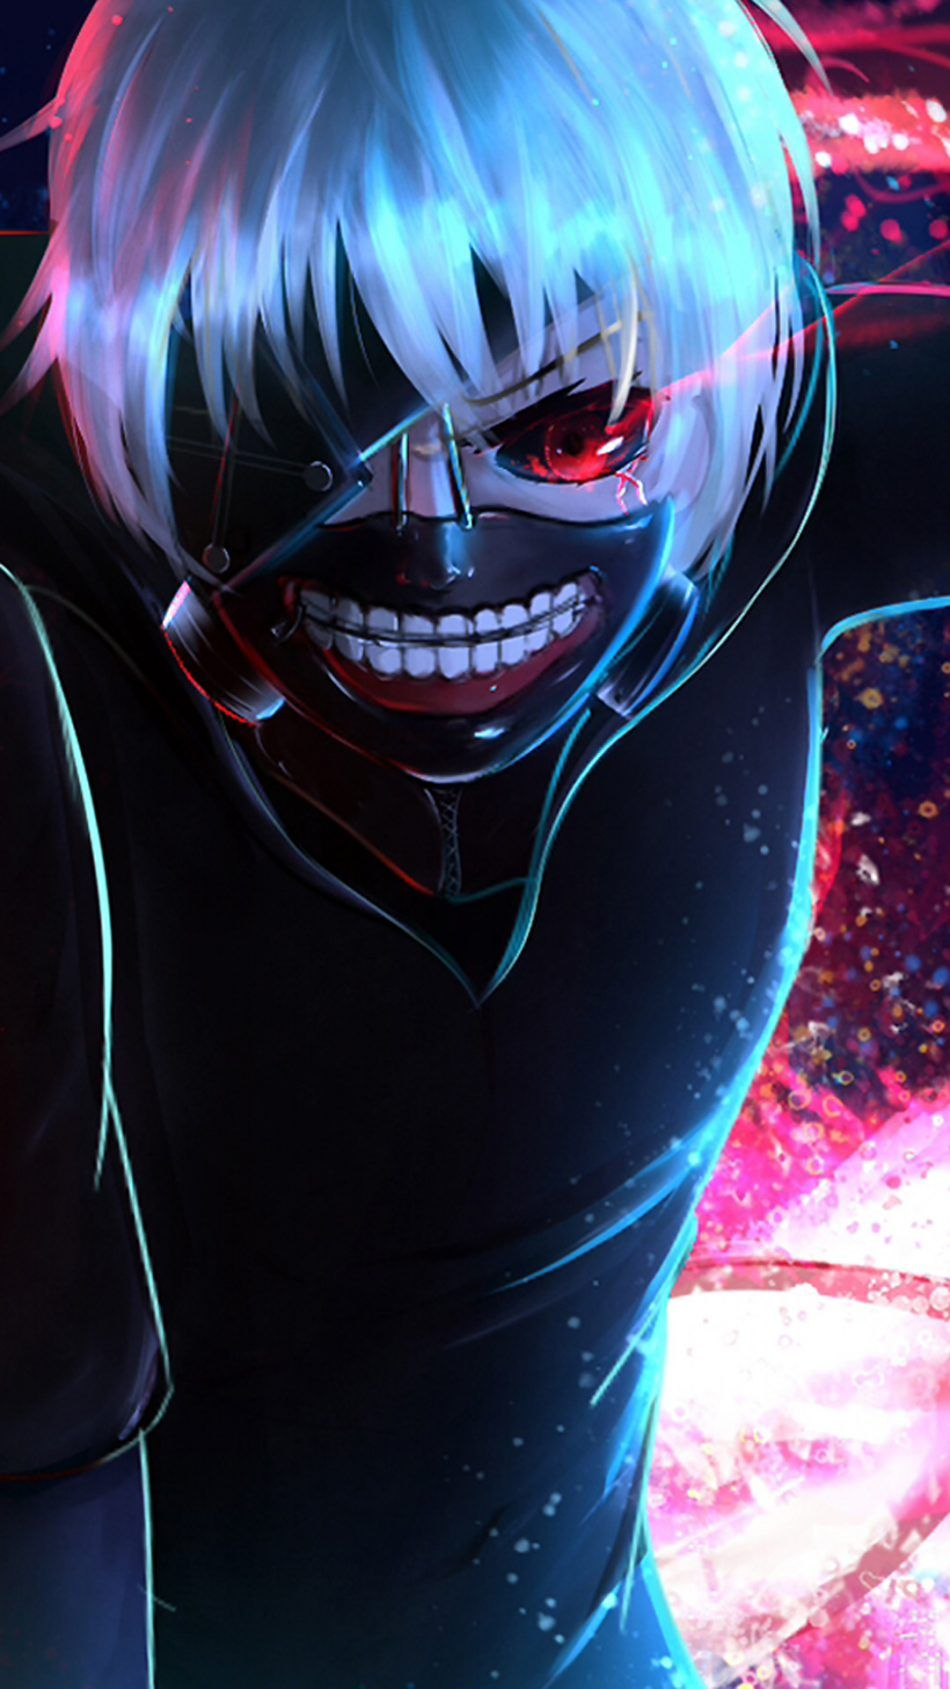 Wallpaper Tokyo Ghoul Hd Untuk Android in 2020 (With